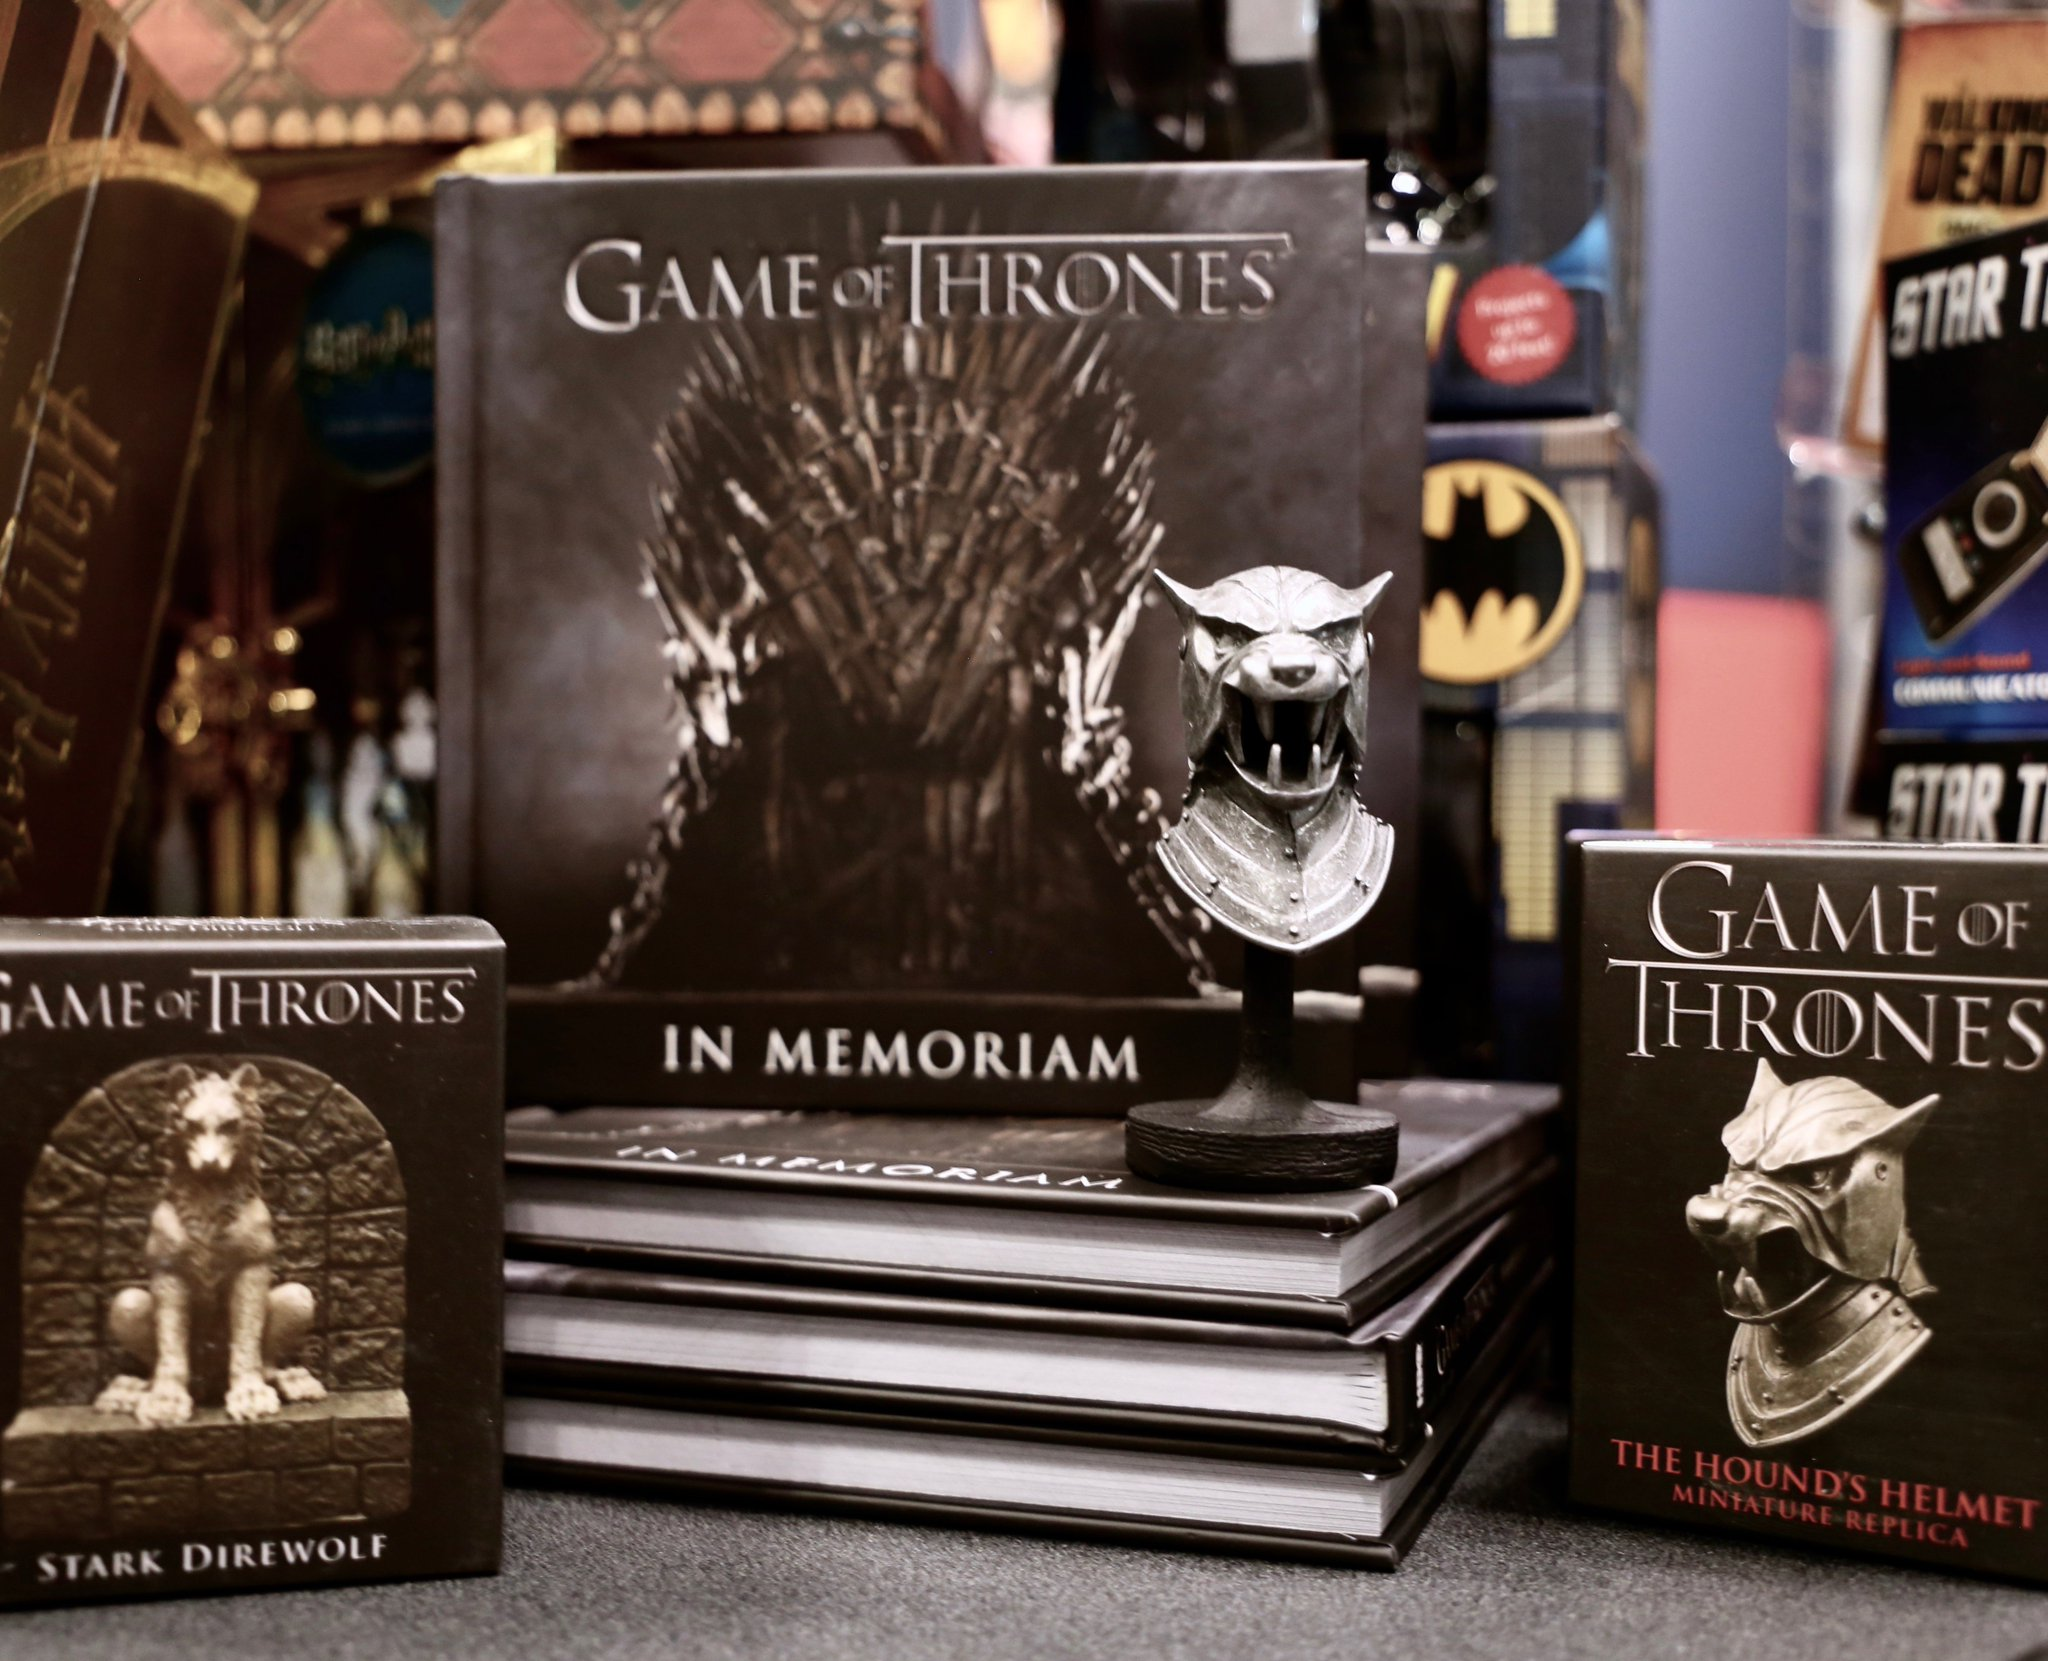 Send a raven.  Head to @Running_Press at #NYCC booth #2218 for exclusive #GameofThrones collectibles. https://t.co/uoqZWuGNg6